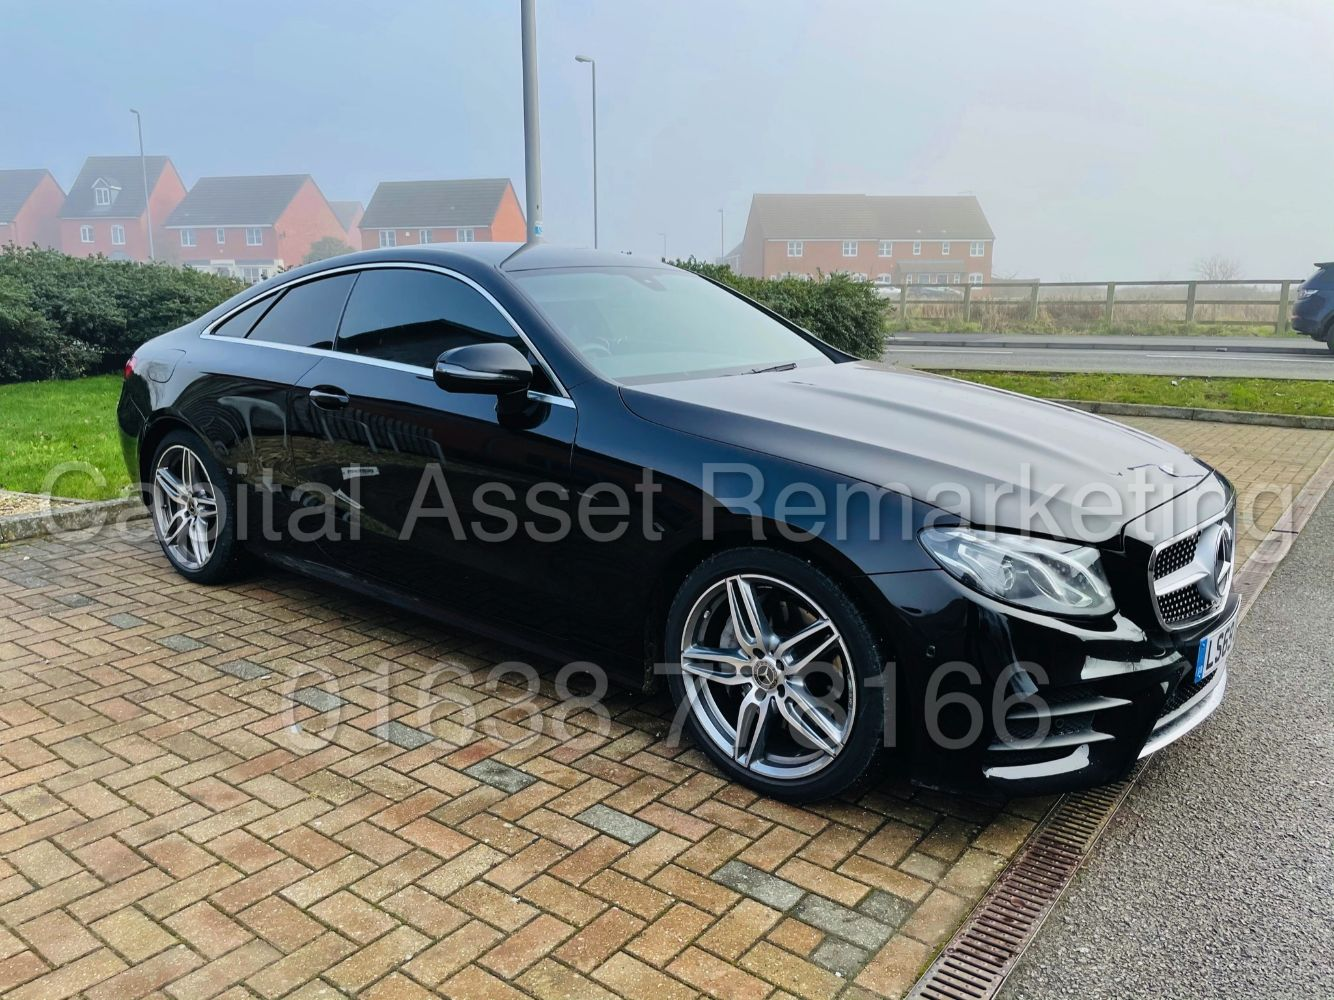 2020 Mercedes-Benz E220d *AMG Coupe* - 2019 Mercedes-Benz C220d *AMG Cabriolet* + Many More: Cars, Commercials & 4x4's